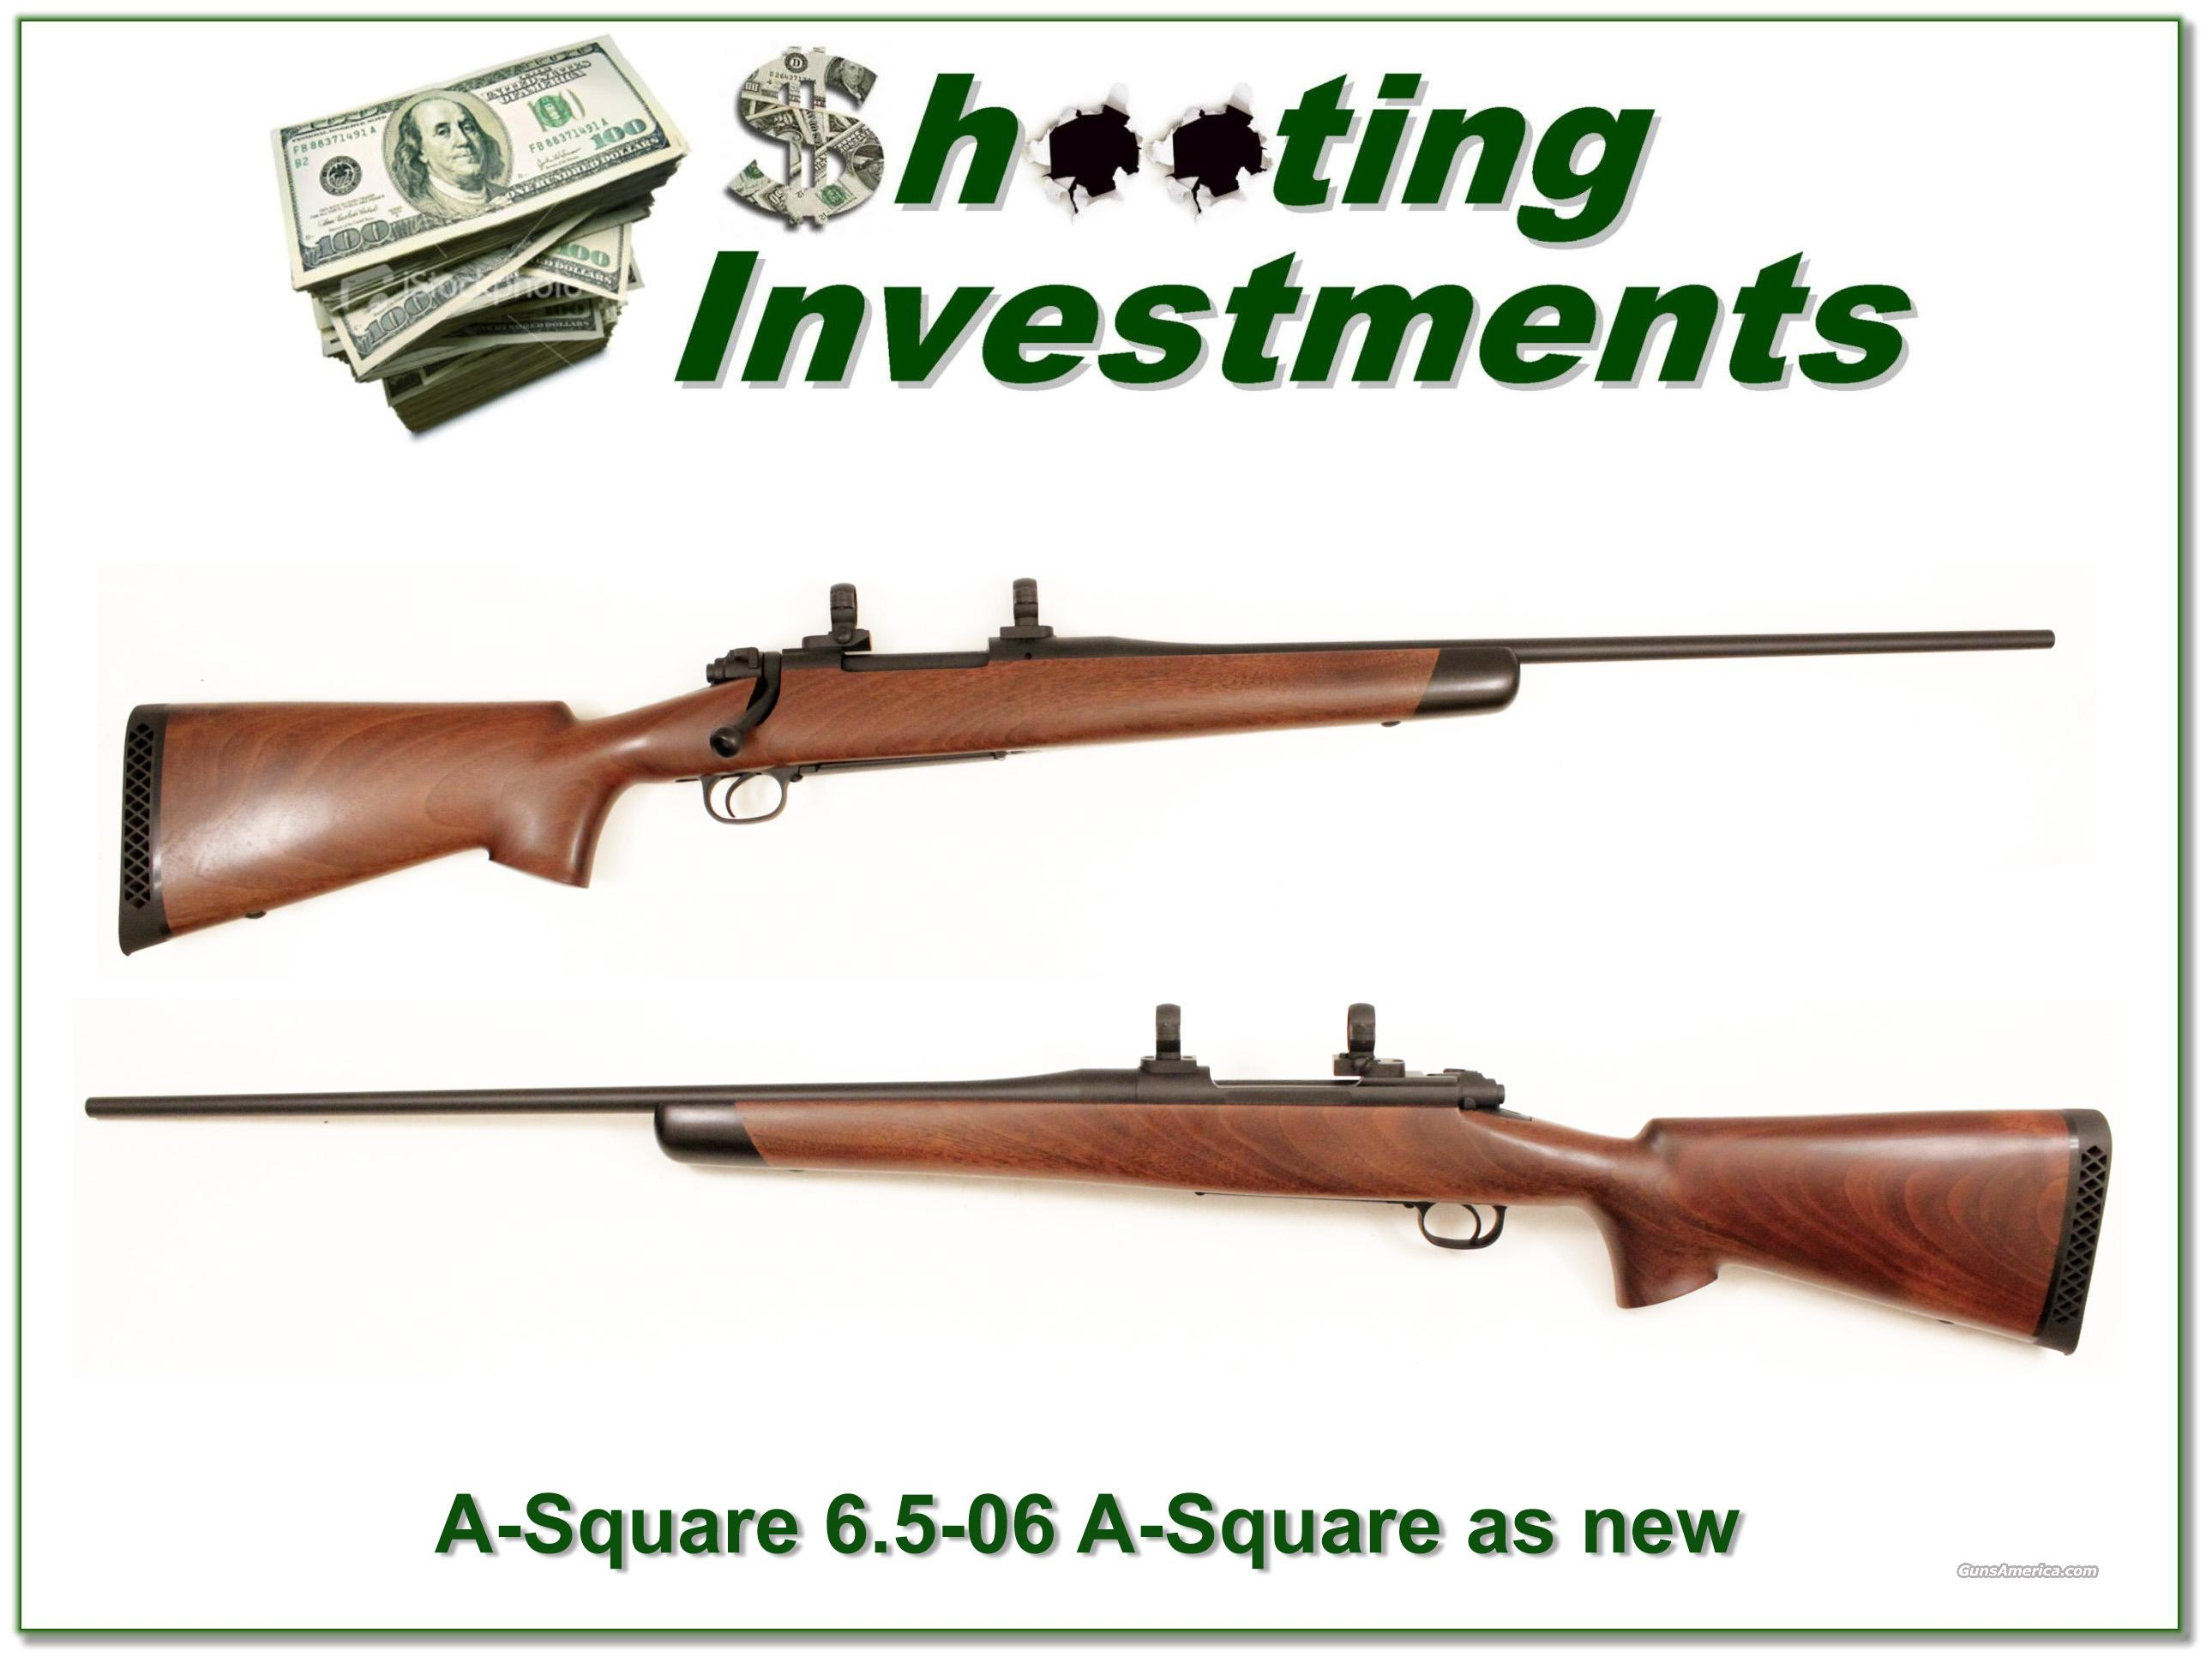 A-Square Hamilcar rifle in 6.5-06 A-Square as new  Guns > Rifles > A Misc Rifles